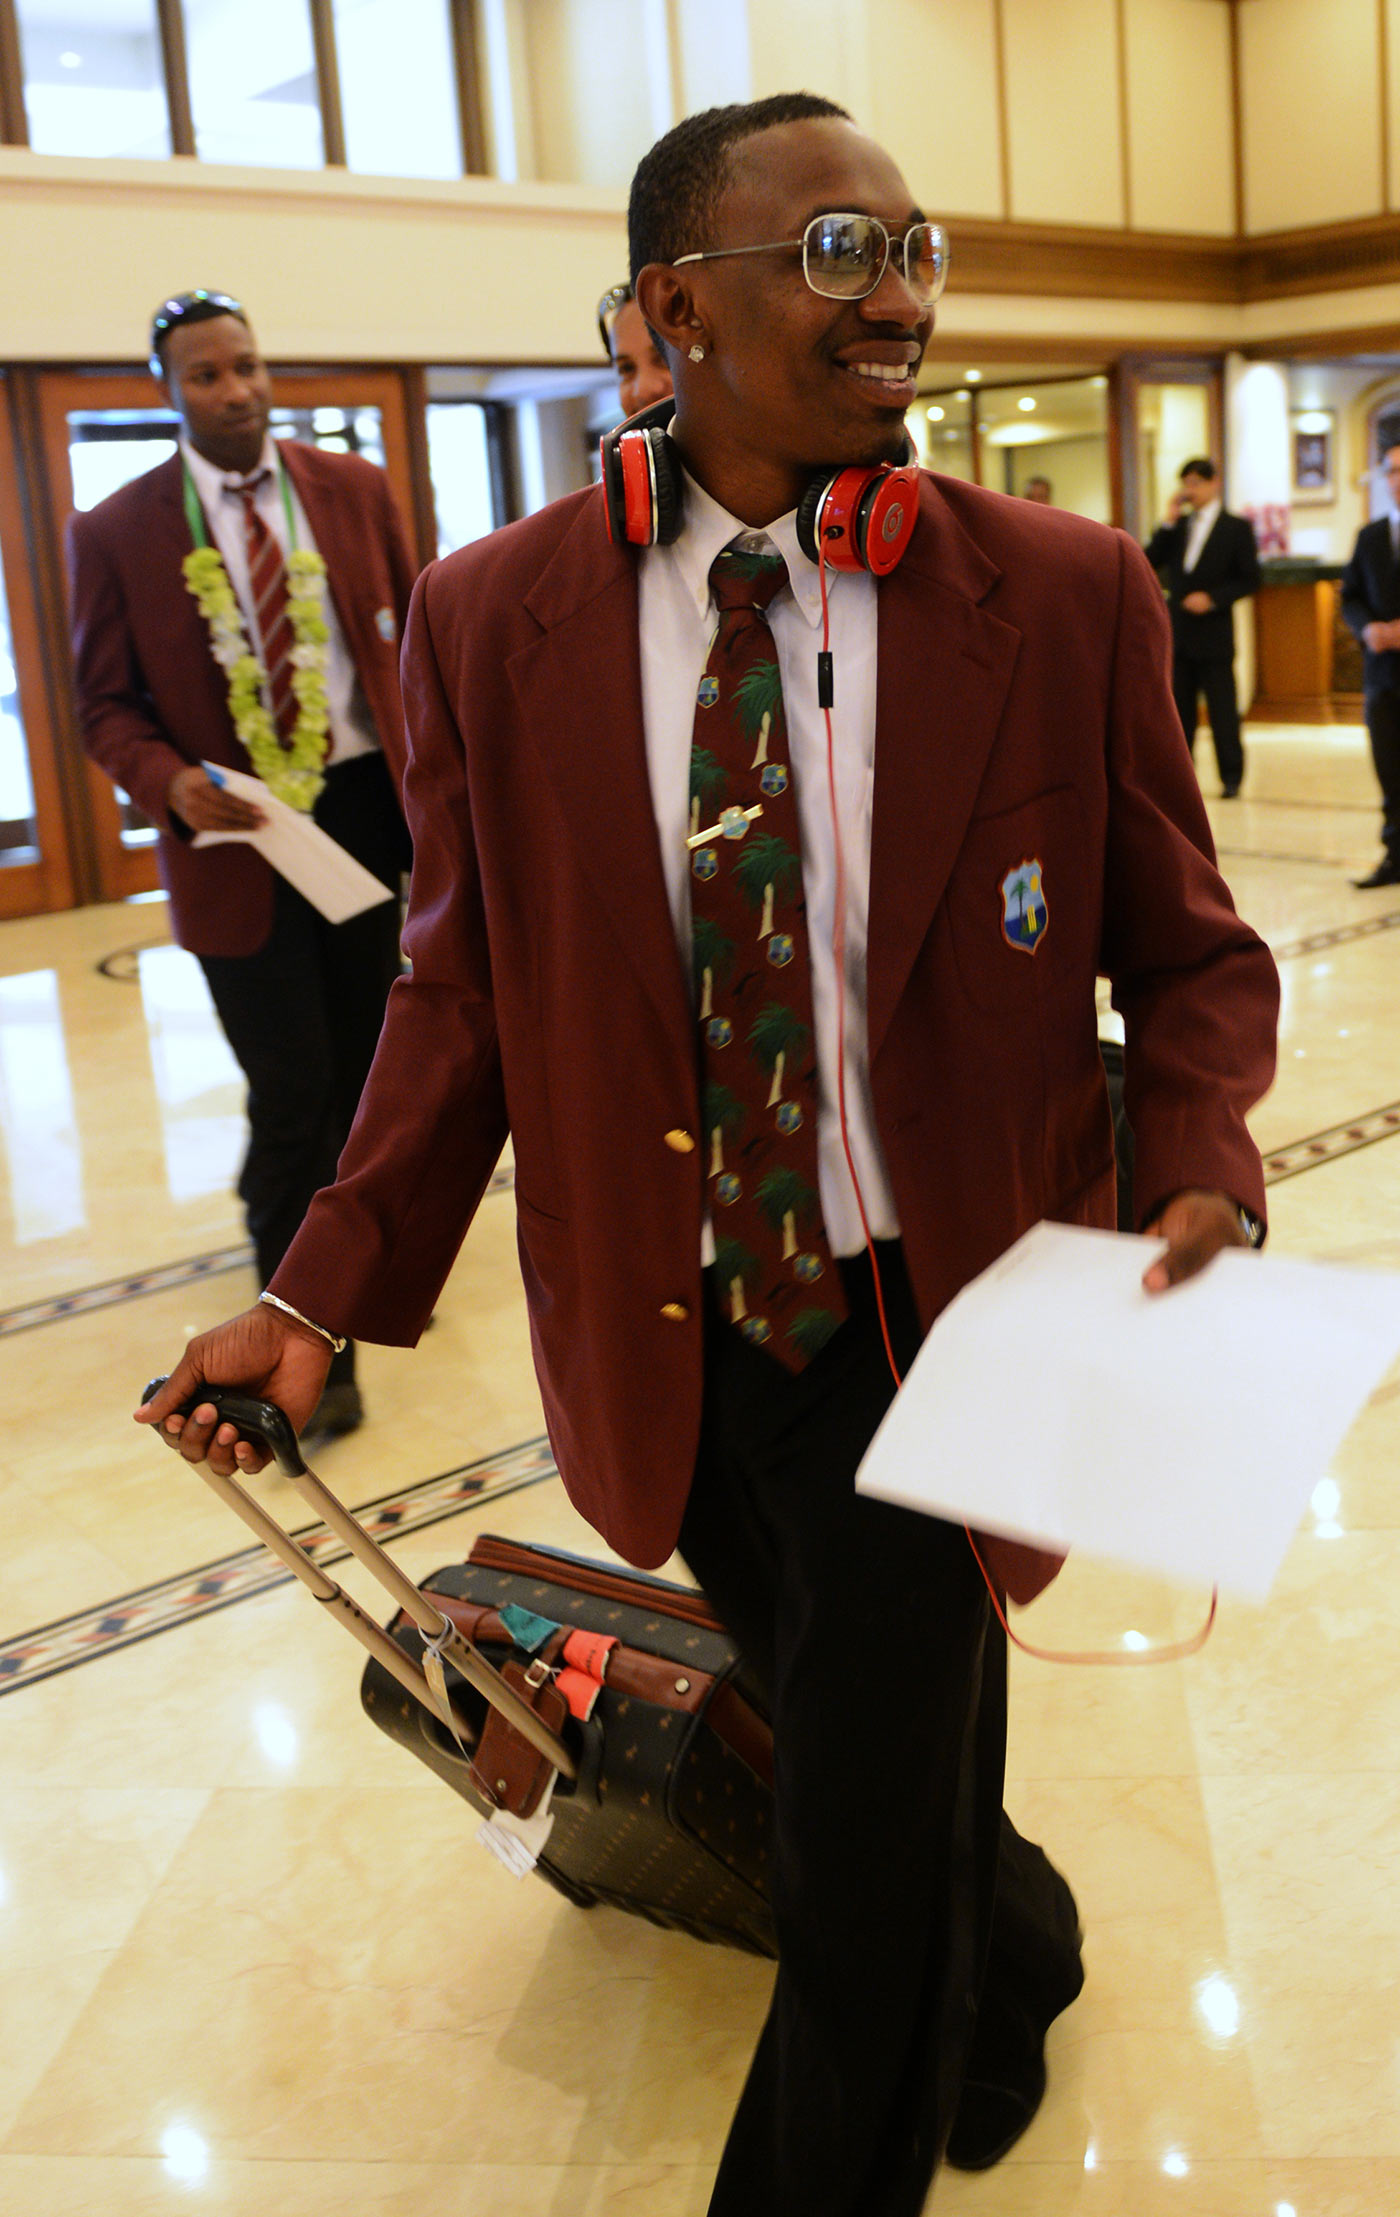 Have rollaboard, will travel the world to play T20